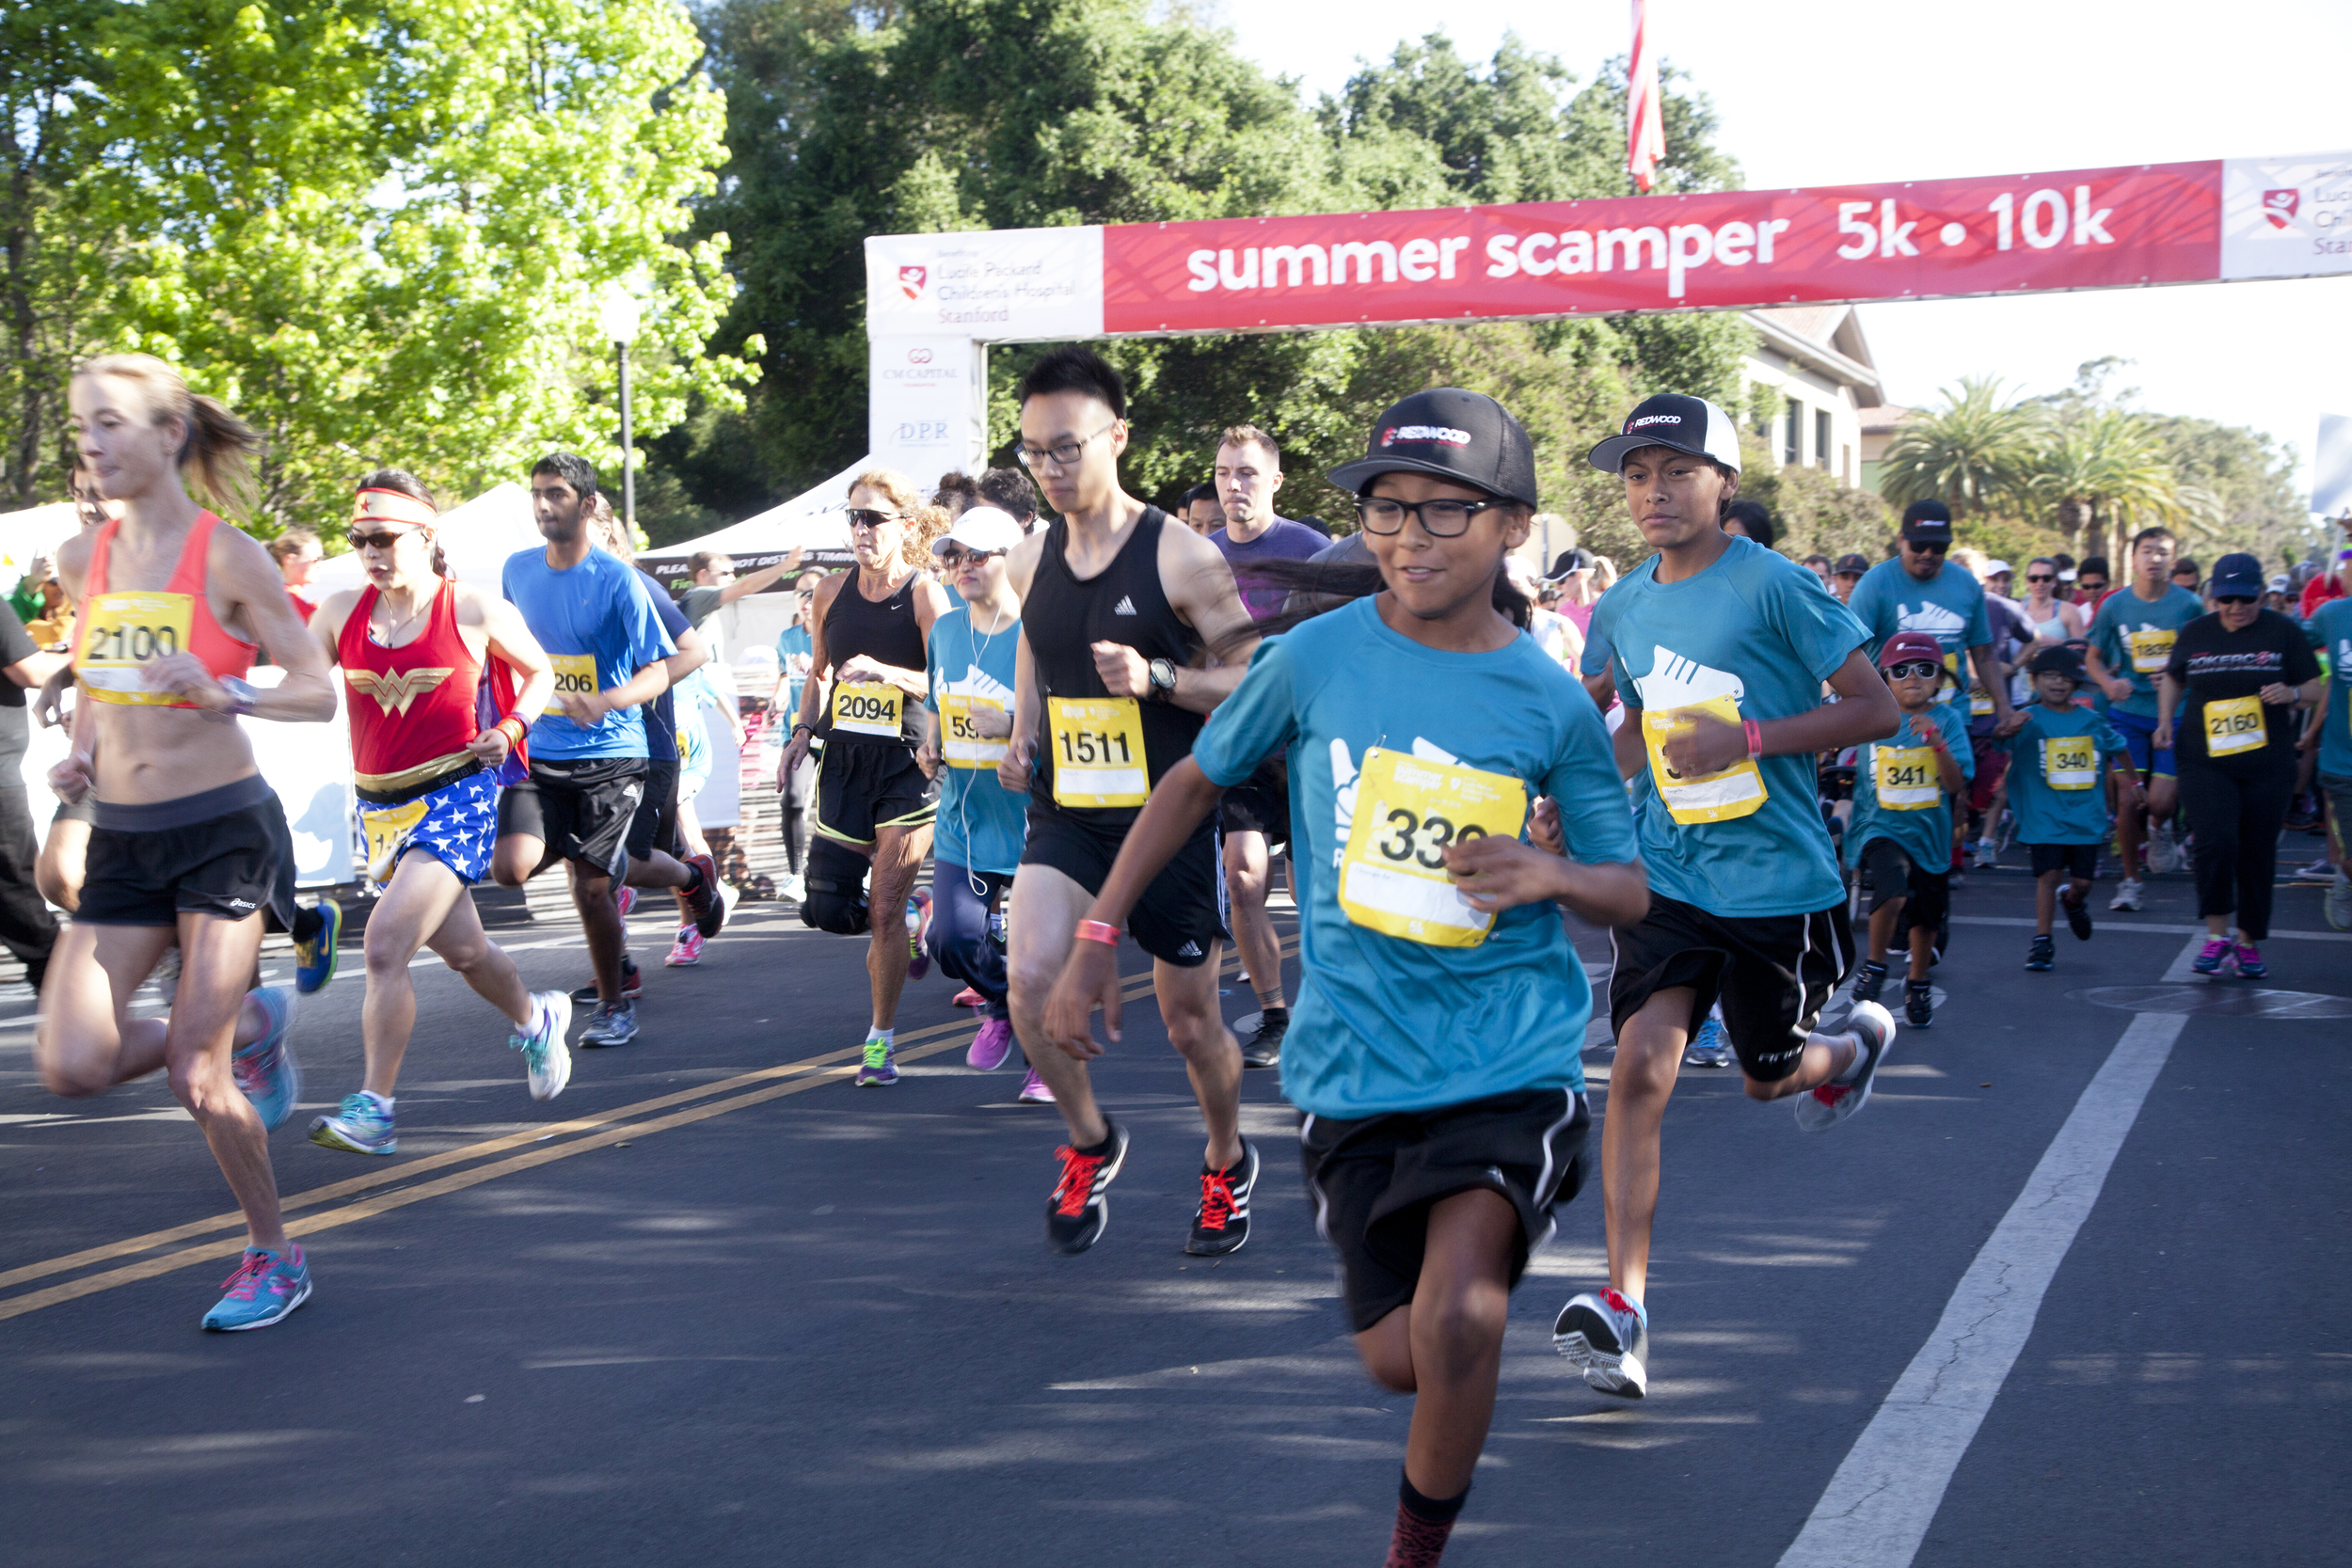 Click to  view and download all 5k, 10k Race Photos .